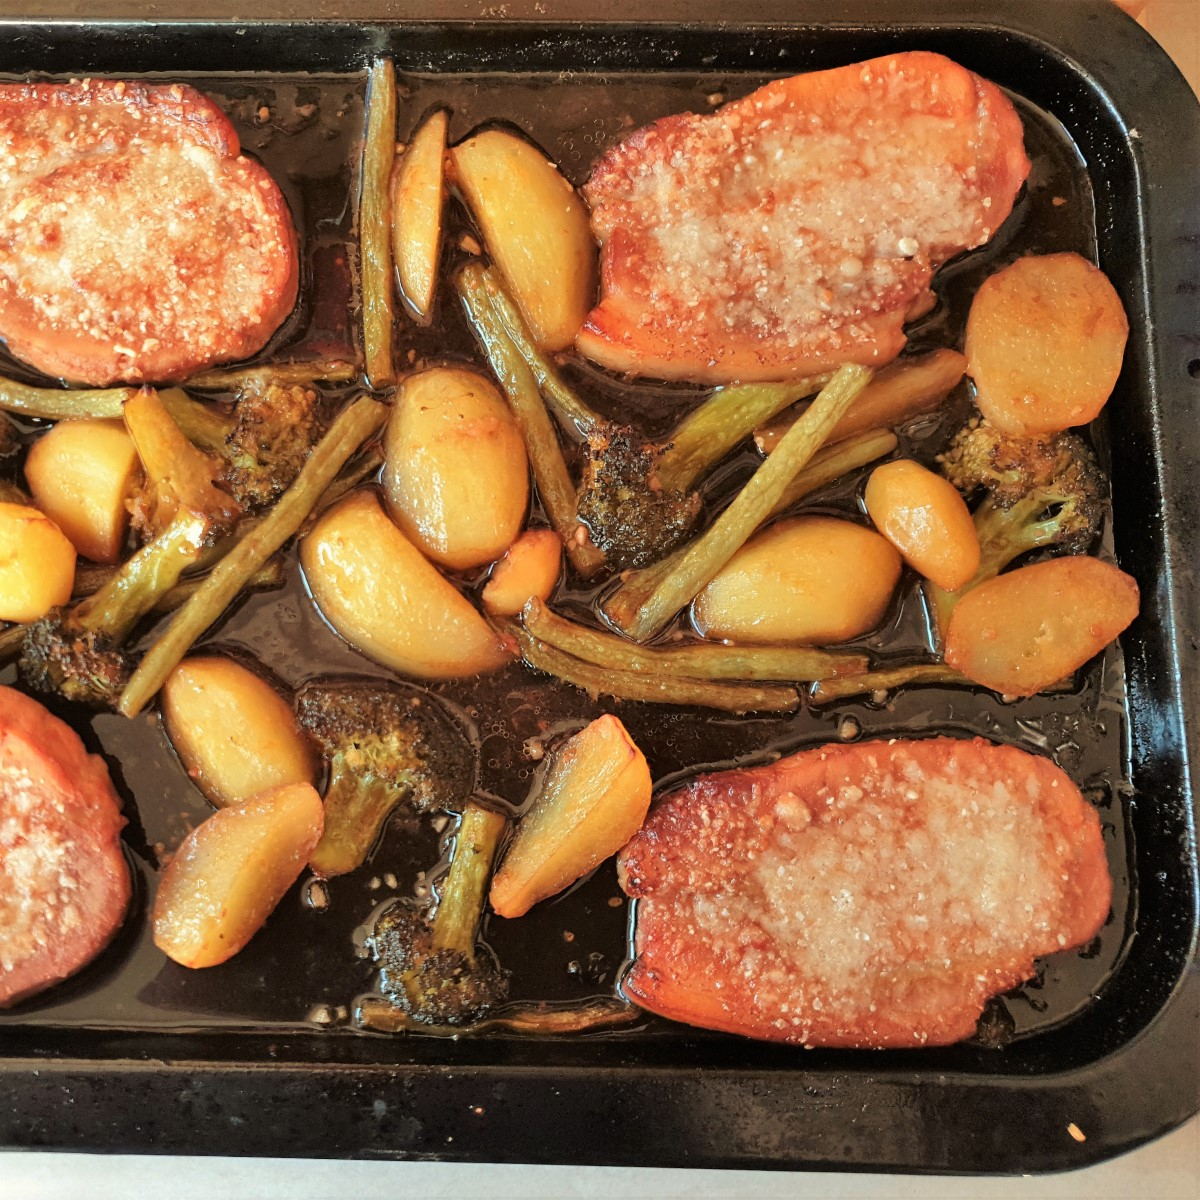 Sheet pan port chops with potatoes, broccoli and green beans sprinkled with parmesan.